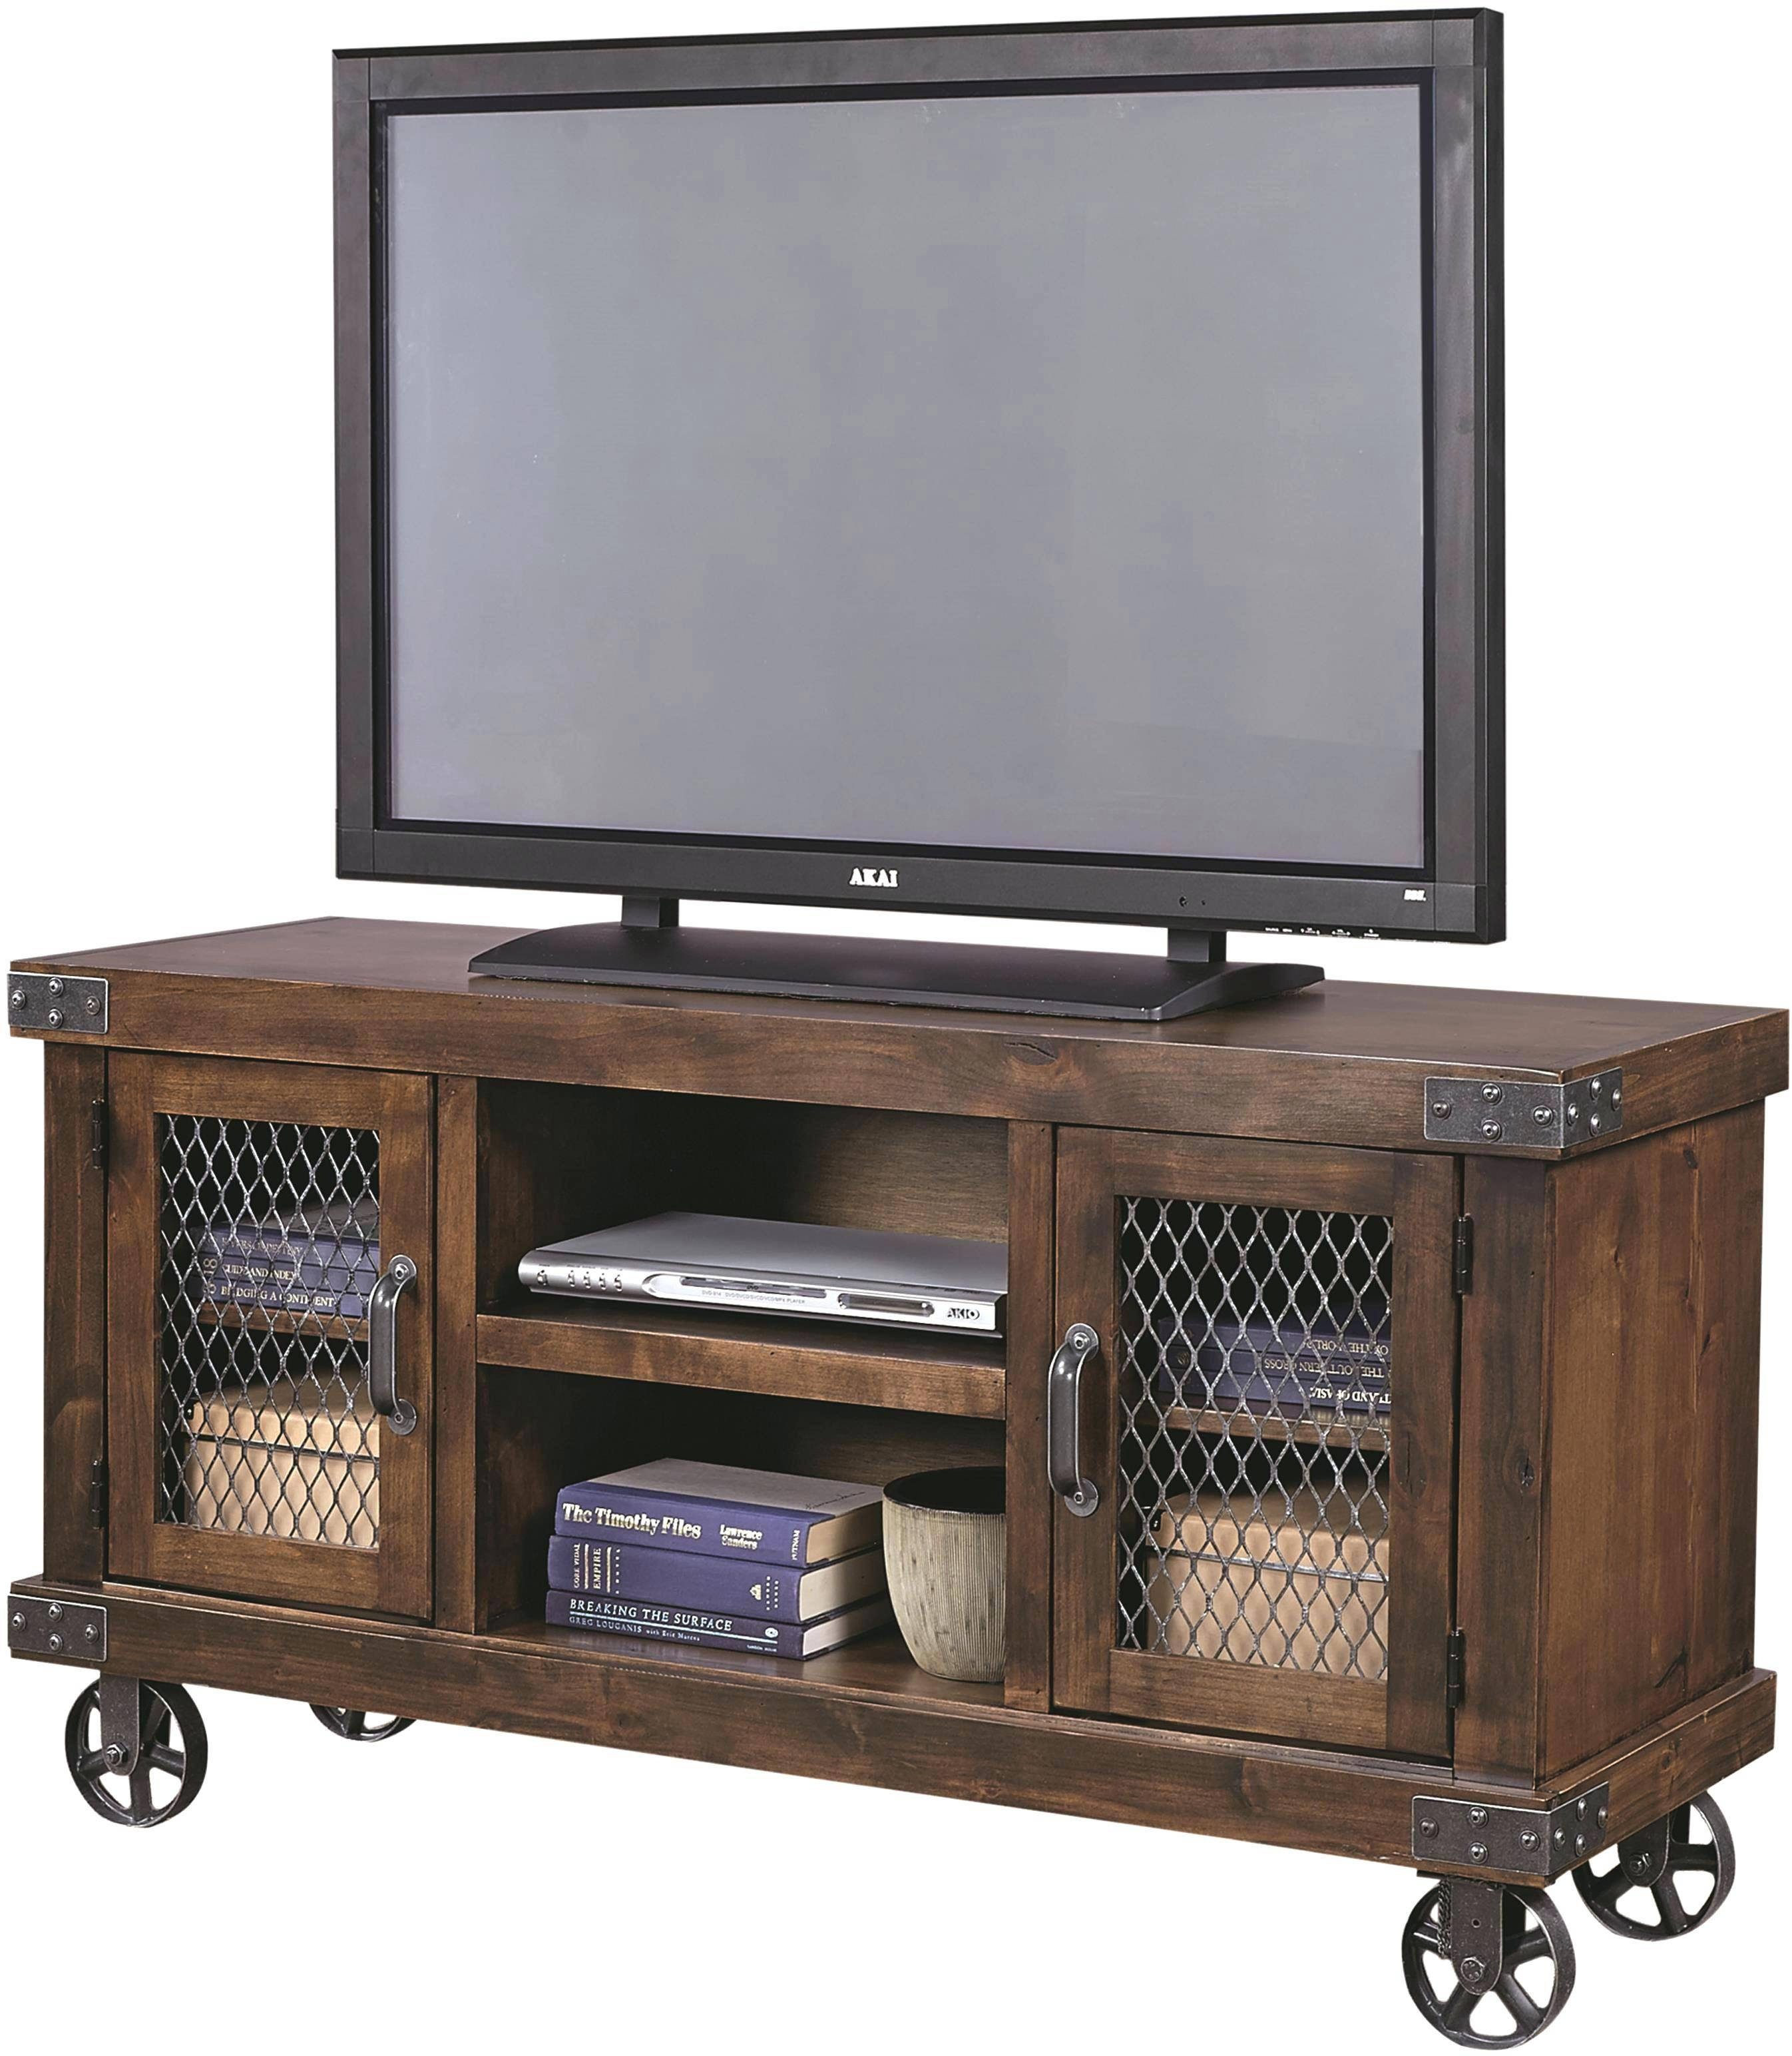 Tv Stand : Modern Gallery Photo Gallery Photo 55 Gallery Photo within Industrial Metal Tv Stands (Image 11 of 15)